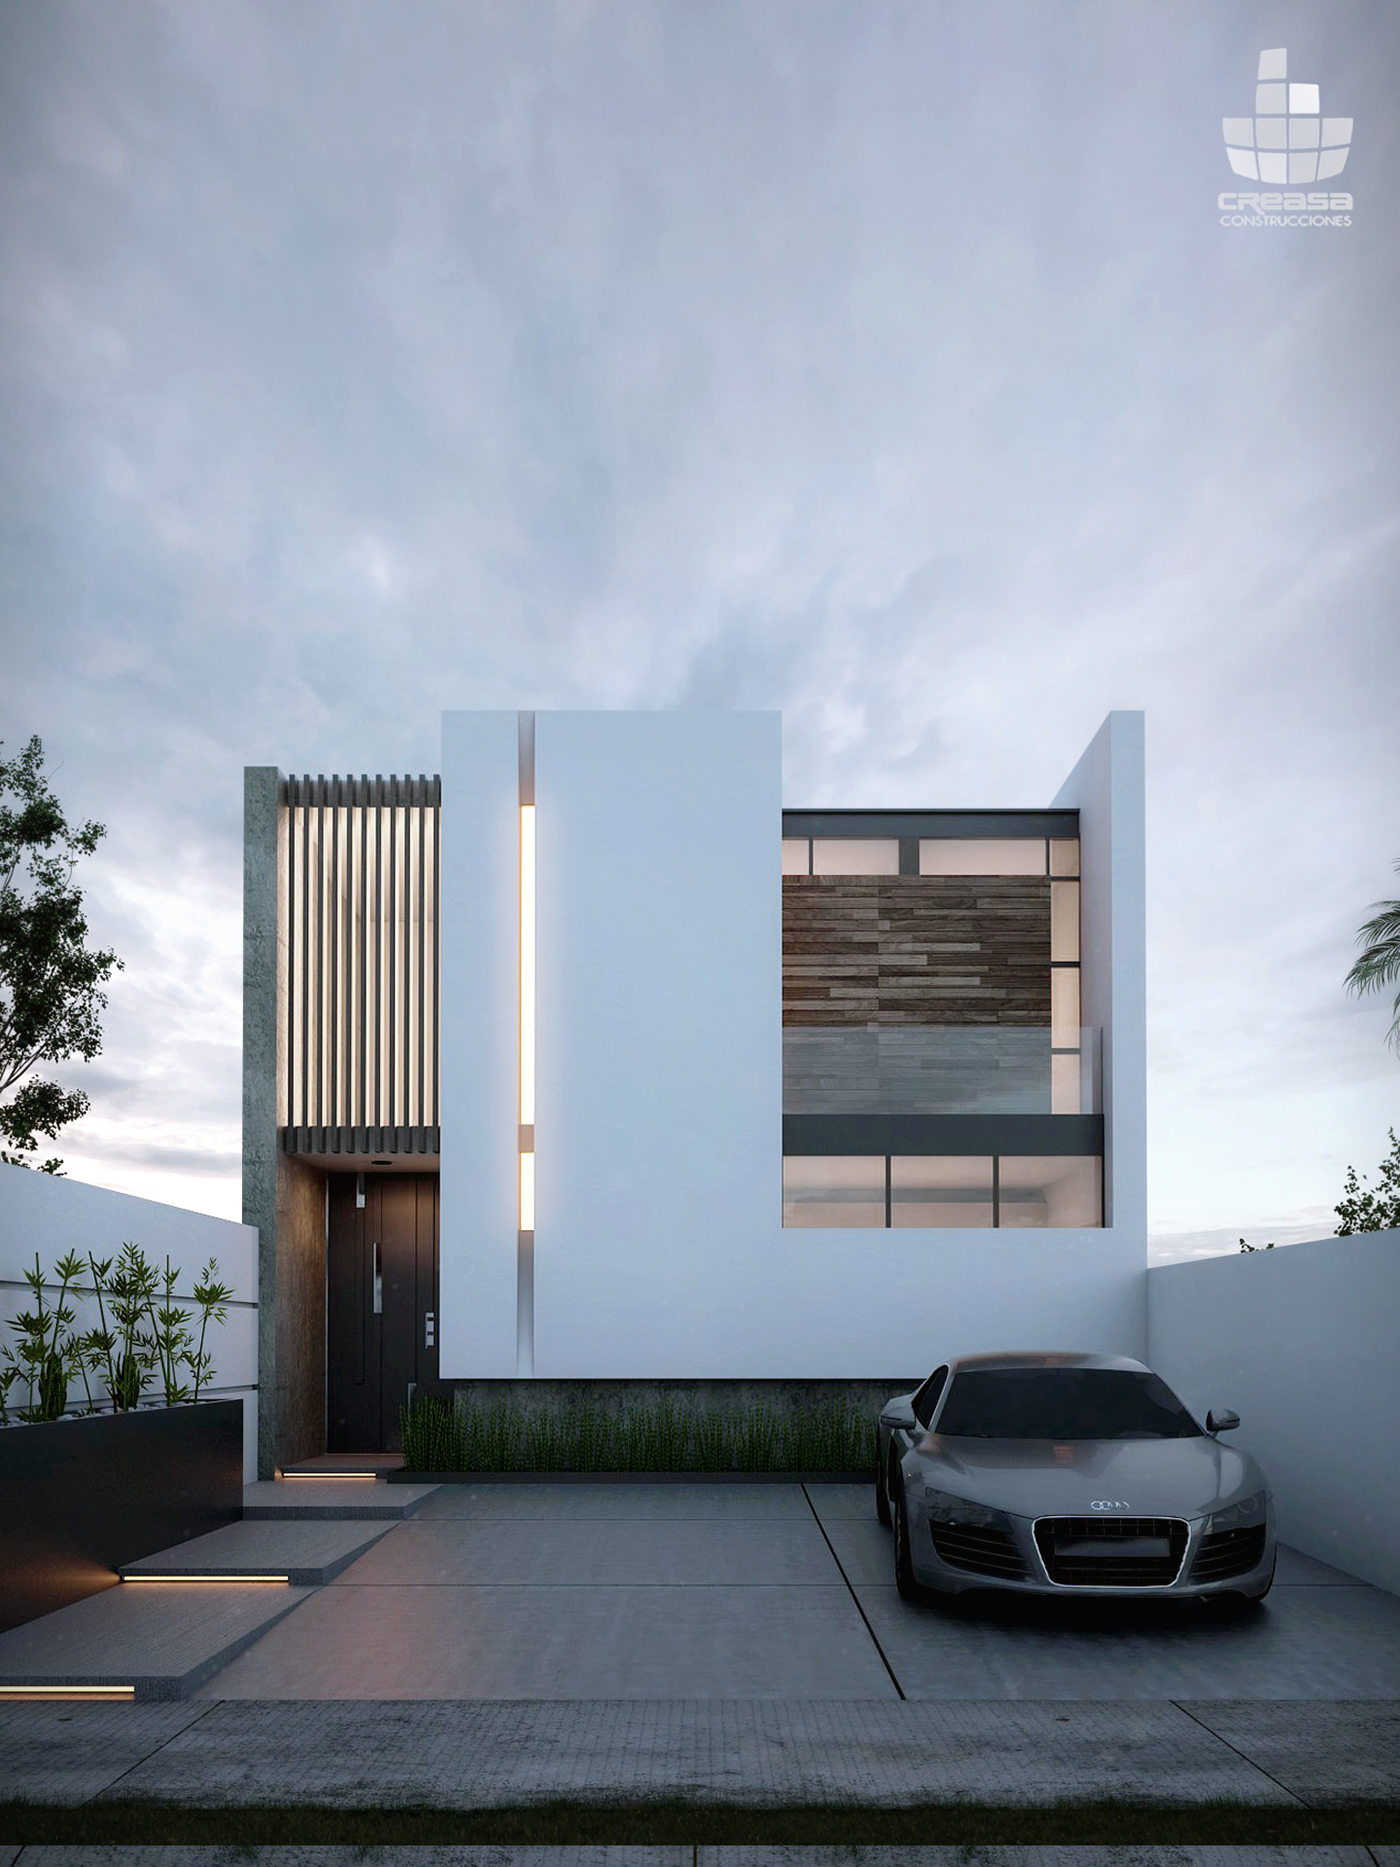 Casas en colima m xico v renderings modern homes in for Casa minimalista granada